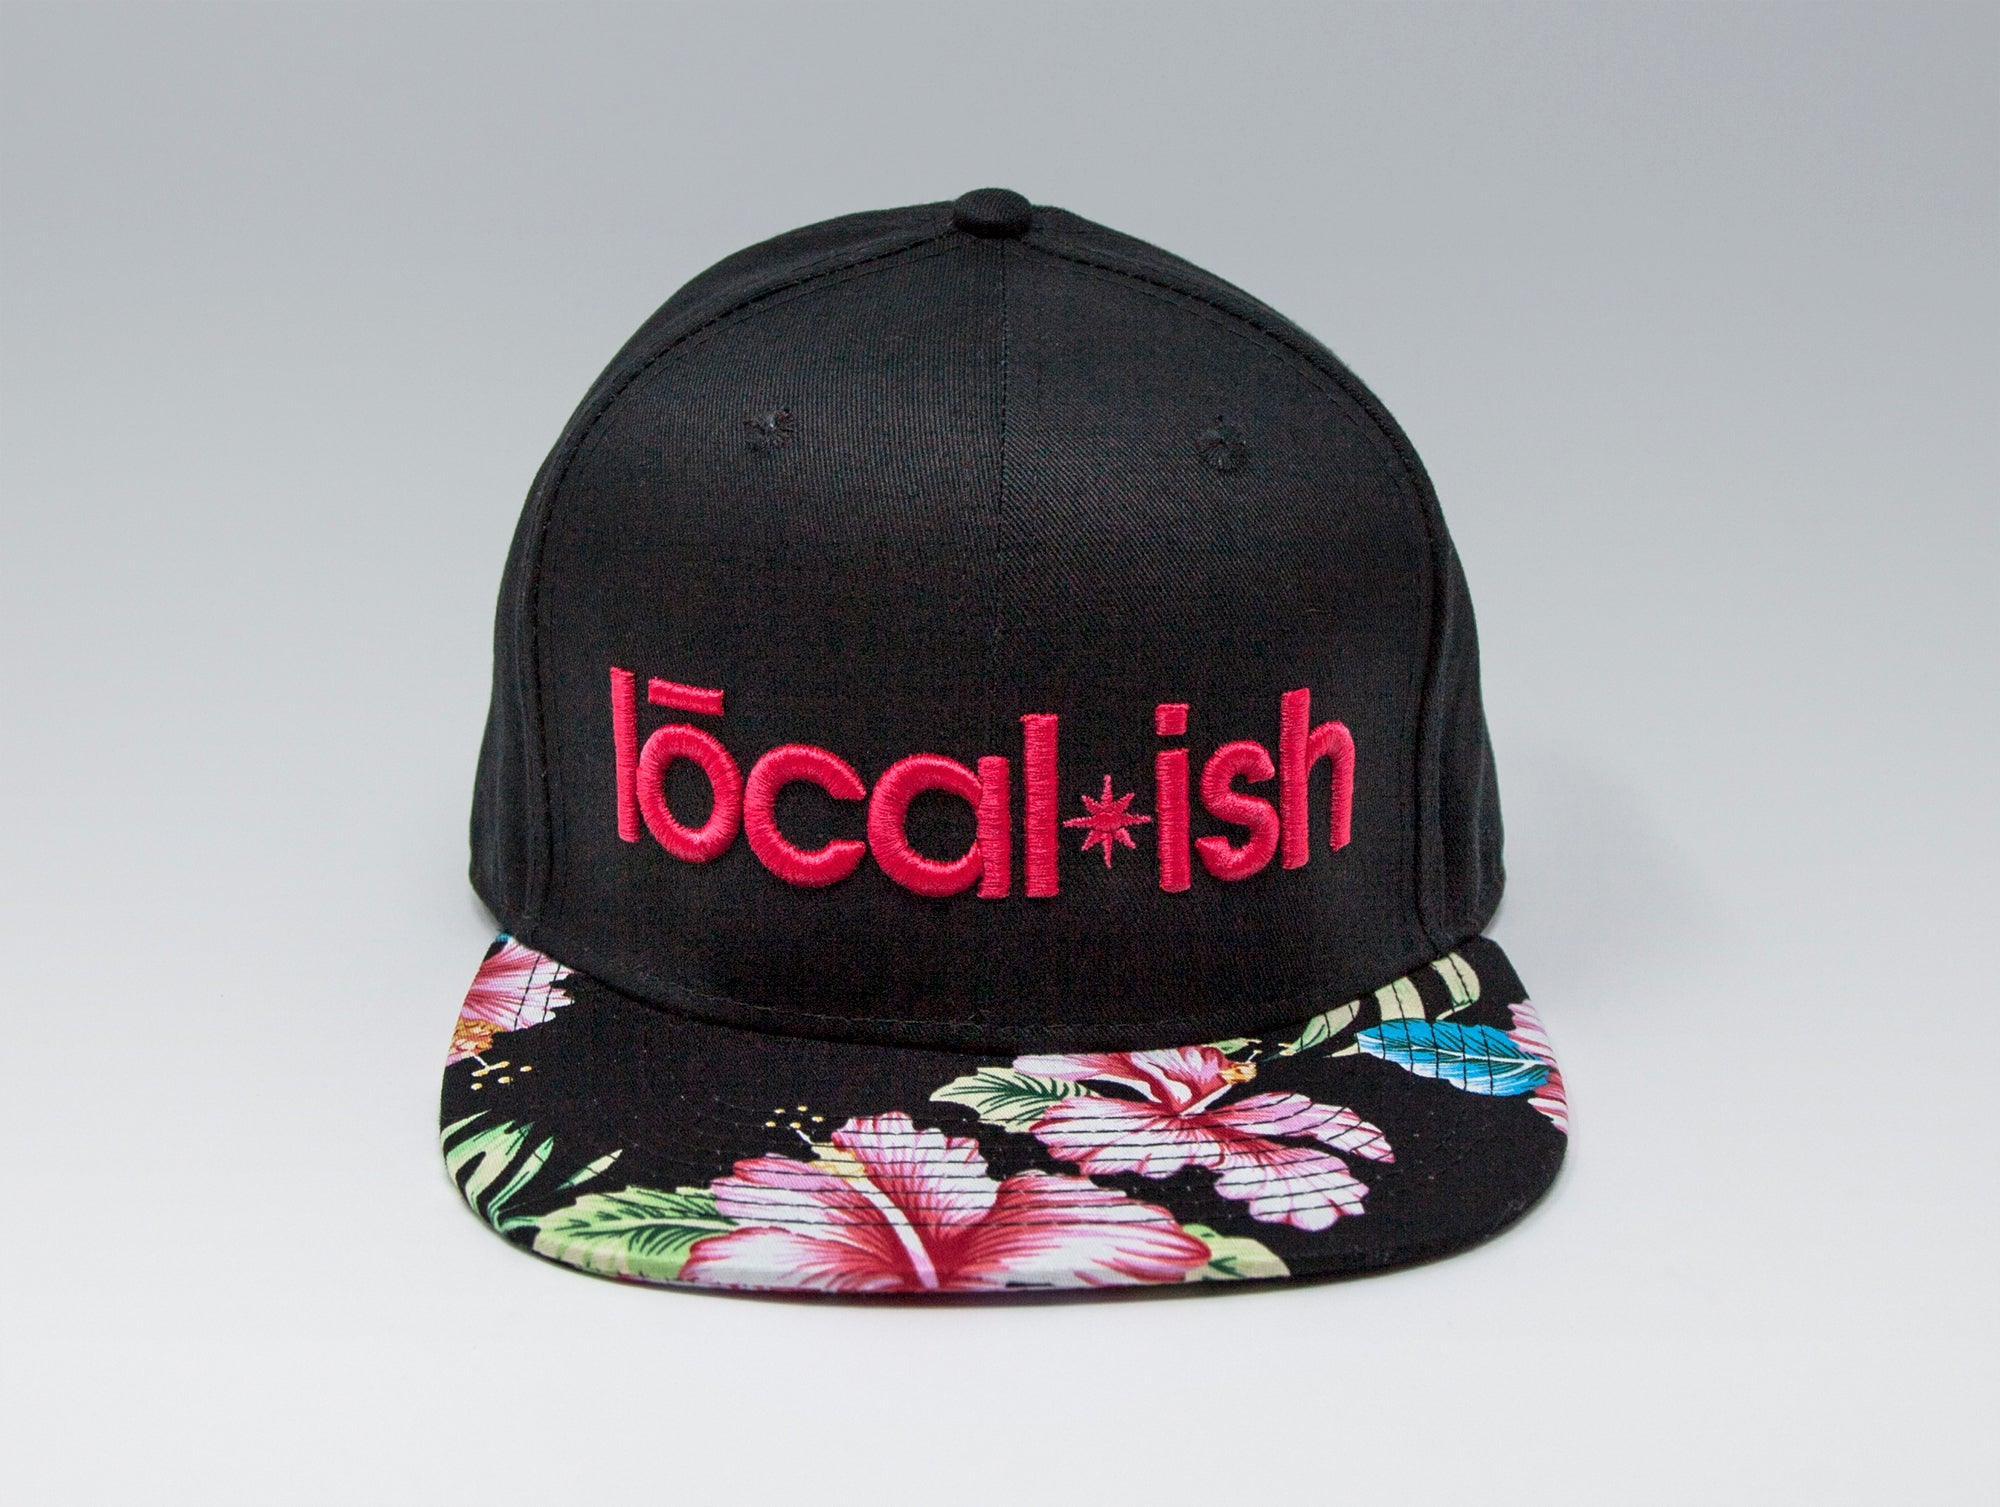 Localish Classic Snapback Hat - Aloha - center